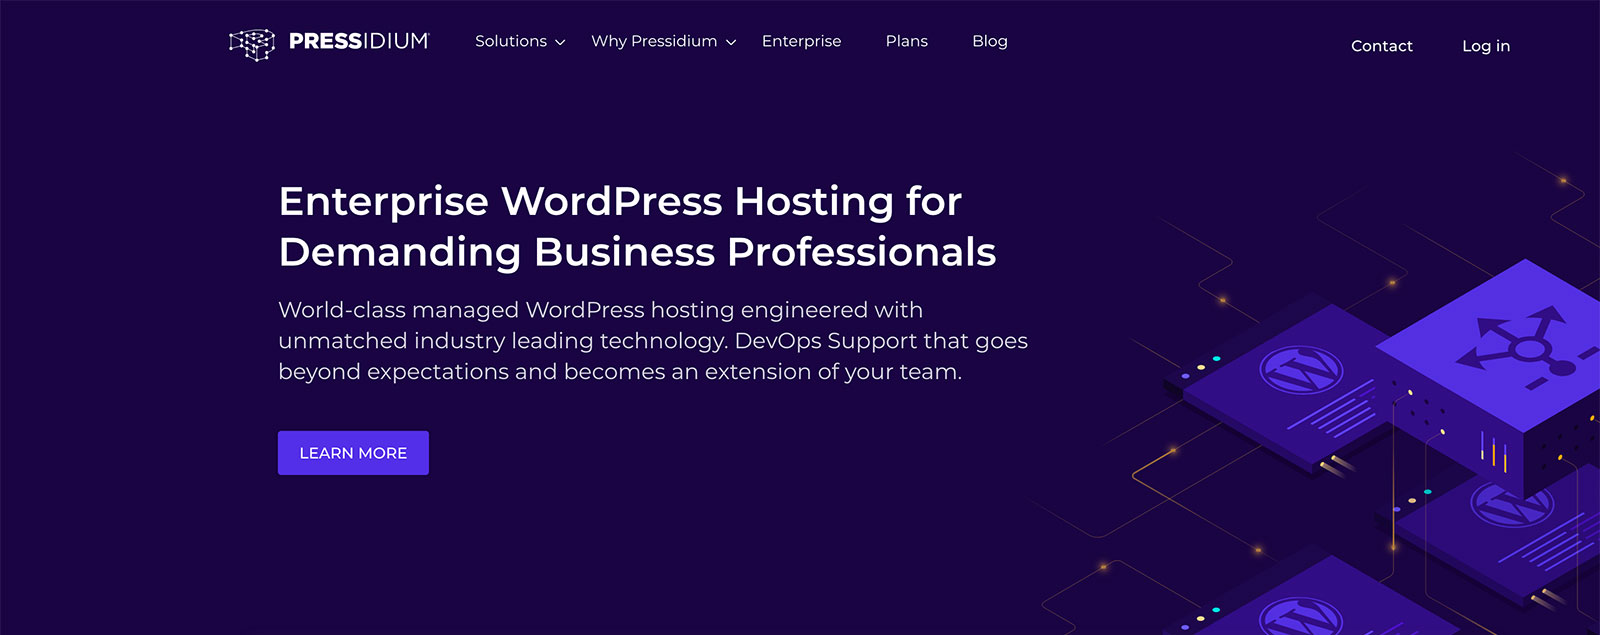 pressidium-wordpress-hosting-review